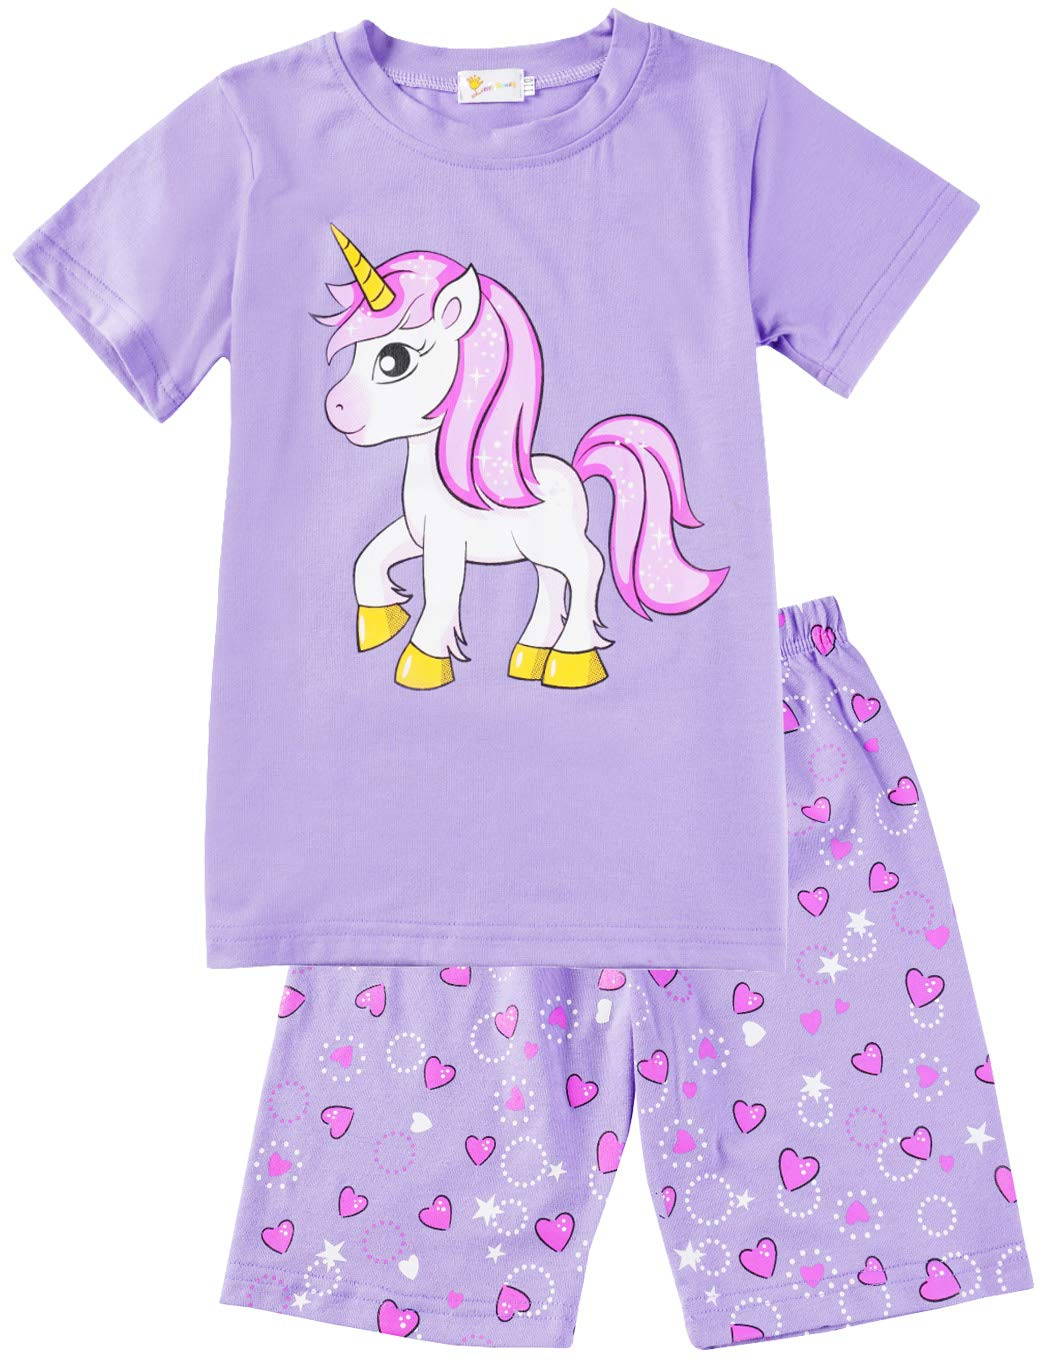 unicorn pjyamas top and shorts